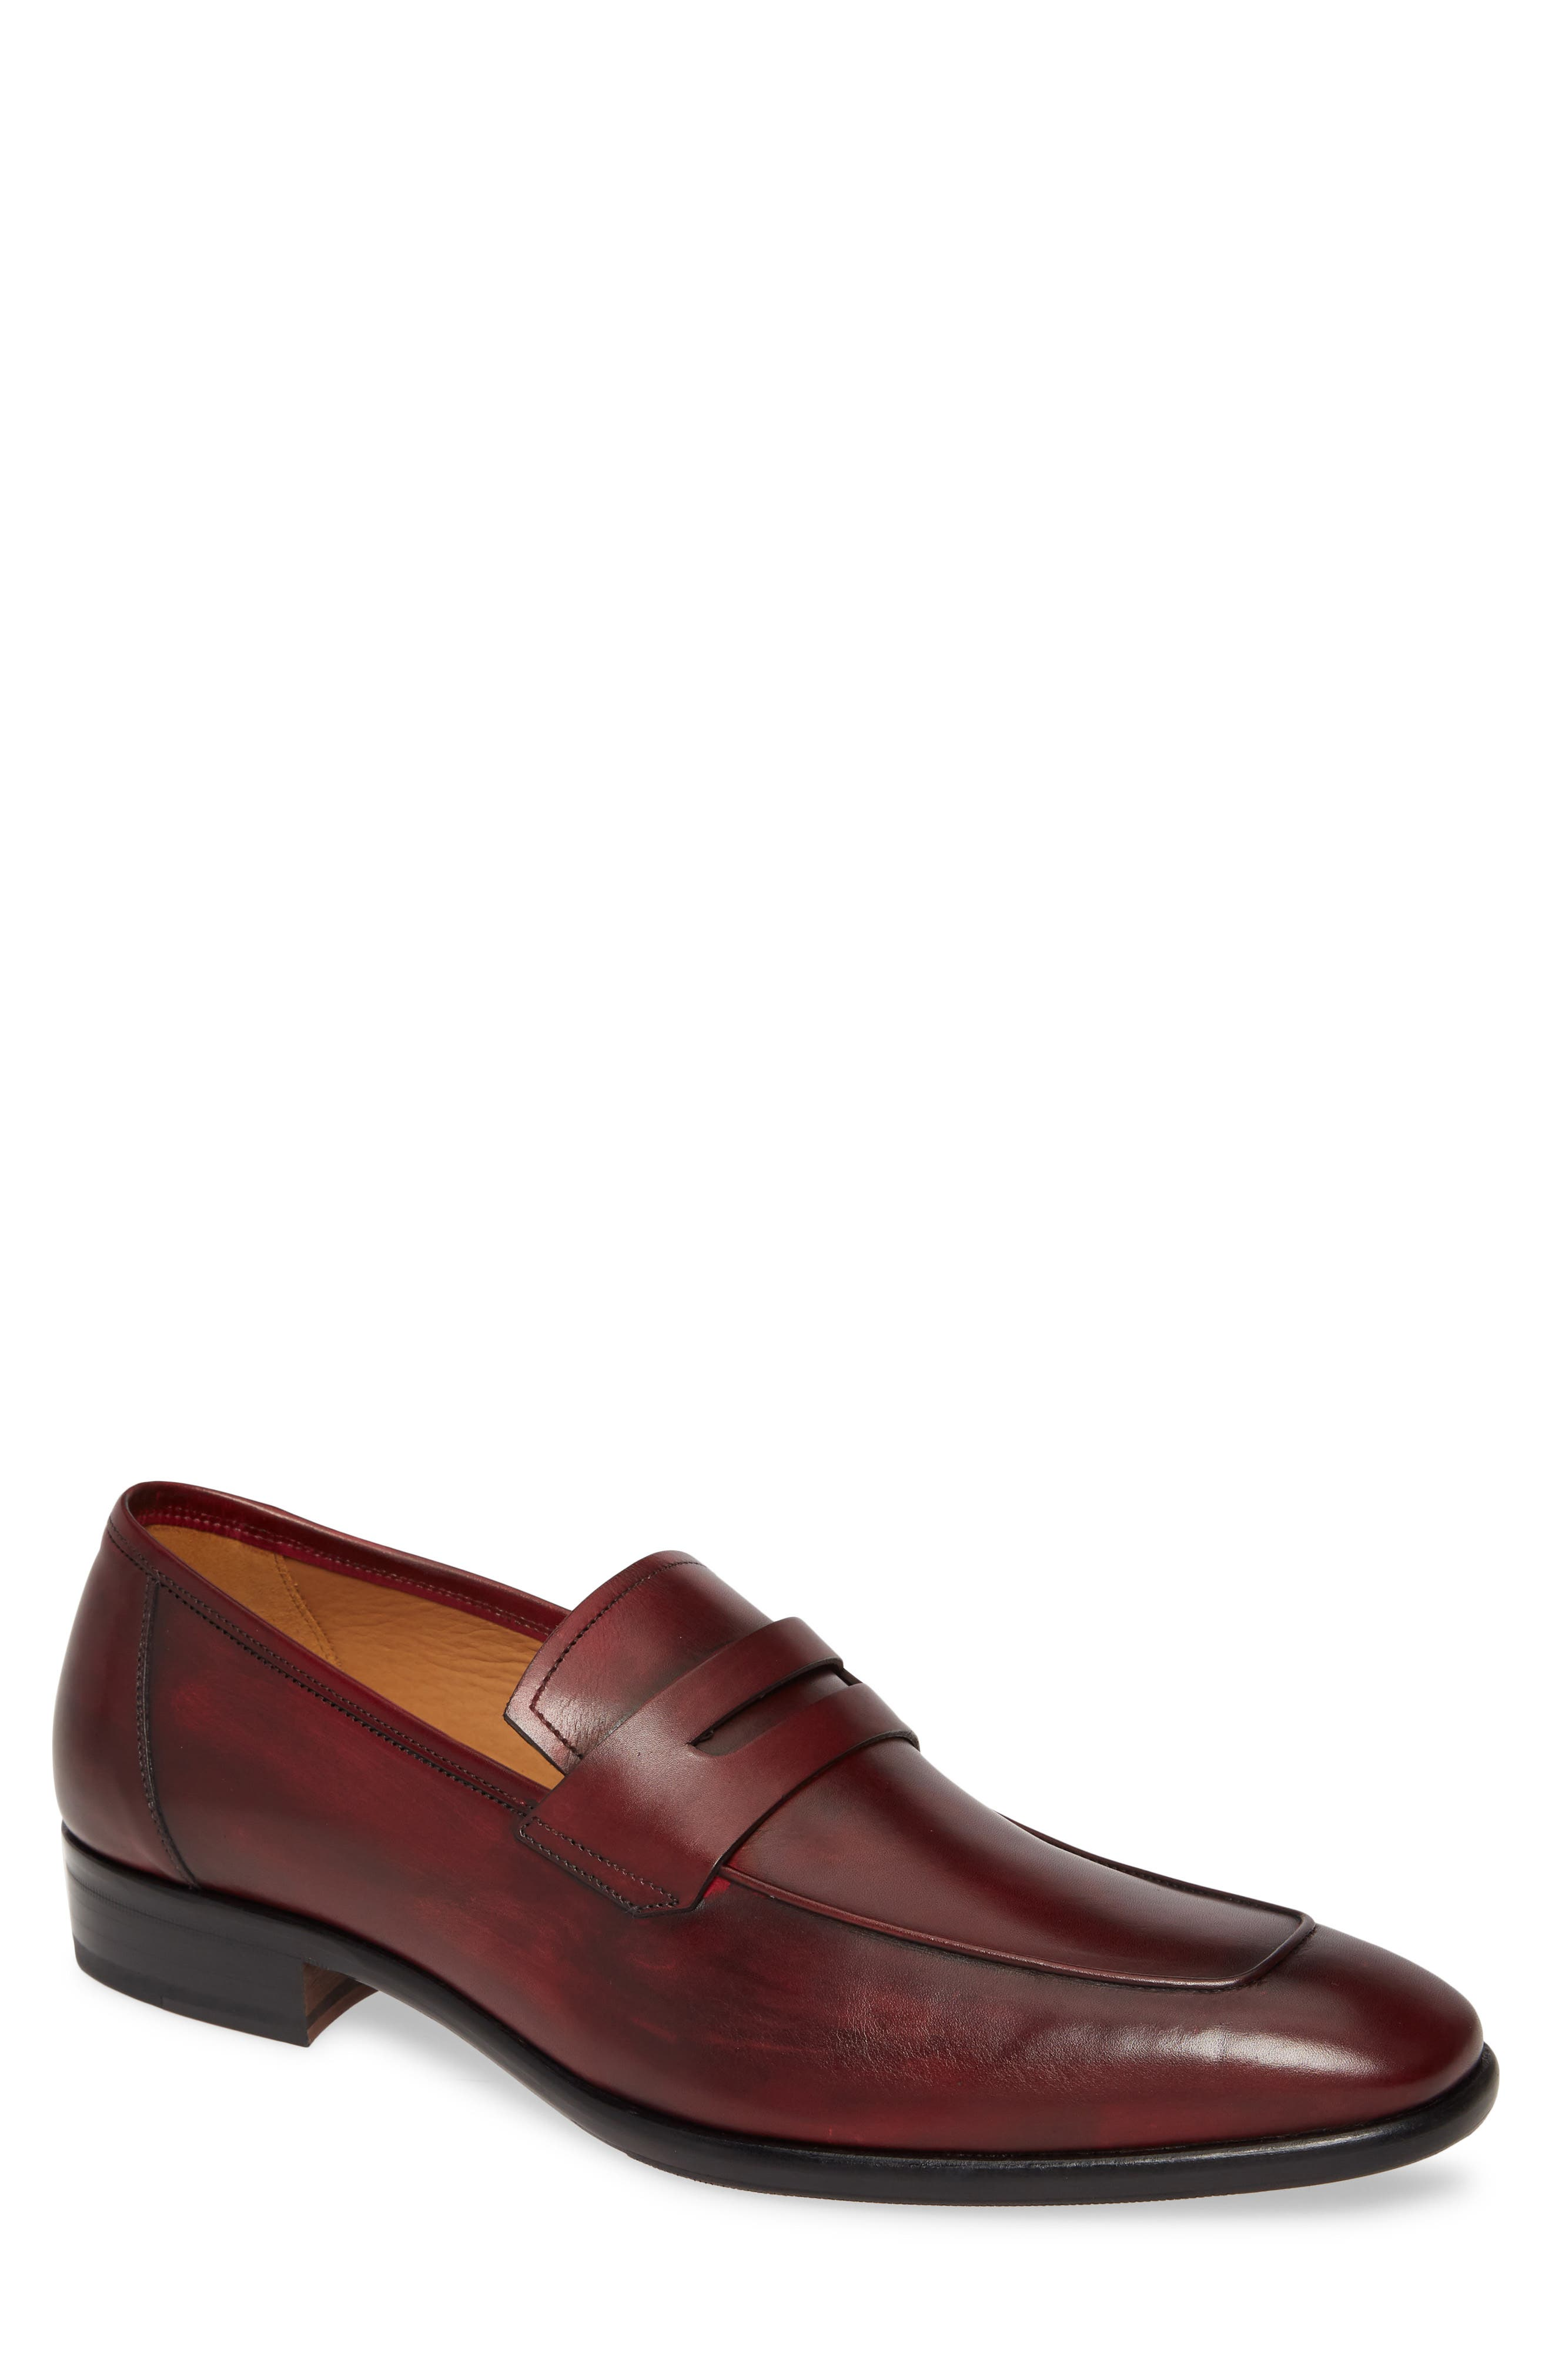 Newport Penny Loafer